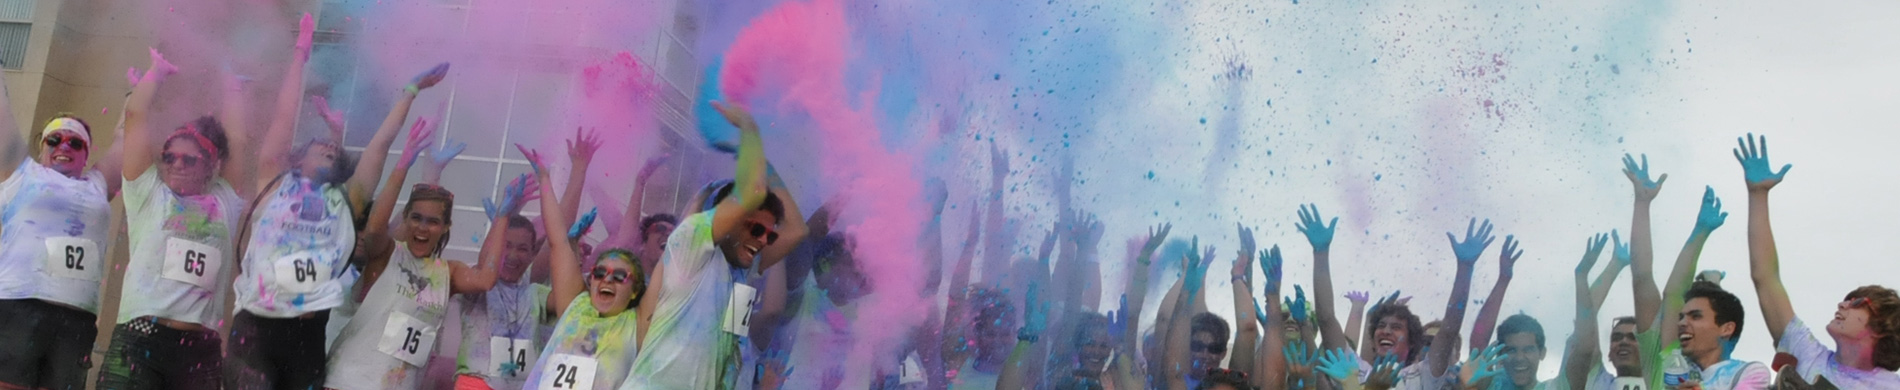 Color Run of the campus of Colorado State University-Pueblo